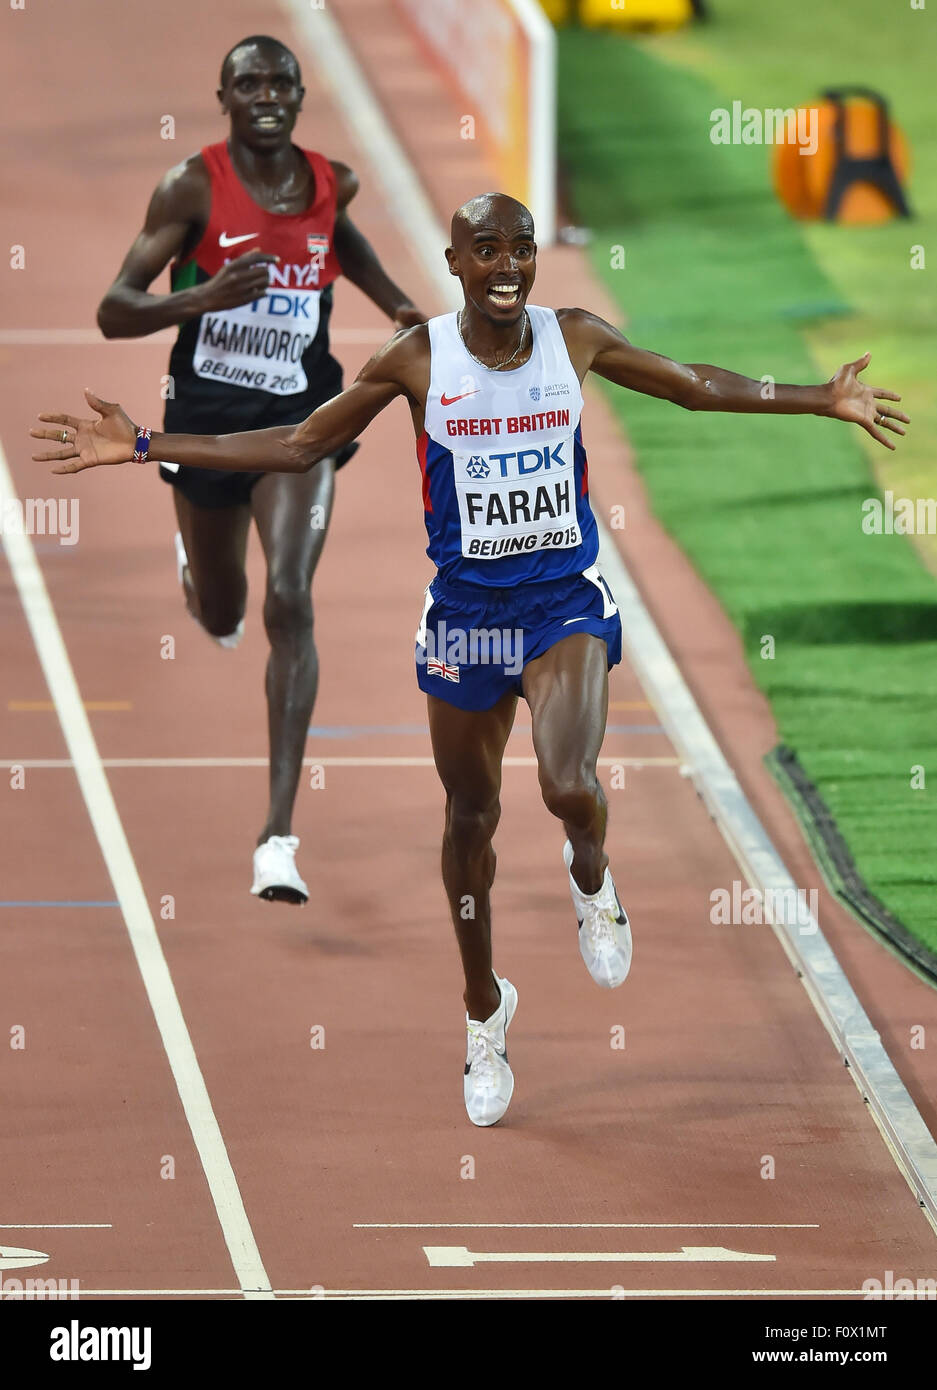 Beijing, China. 22nd August, 2015. Mo Farah of Great Britain in the mens 10 000m final during day 1 of the 2015 - Stock Image